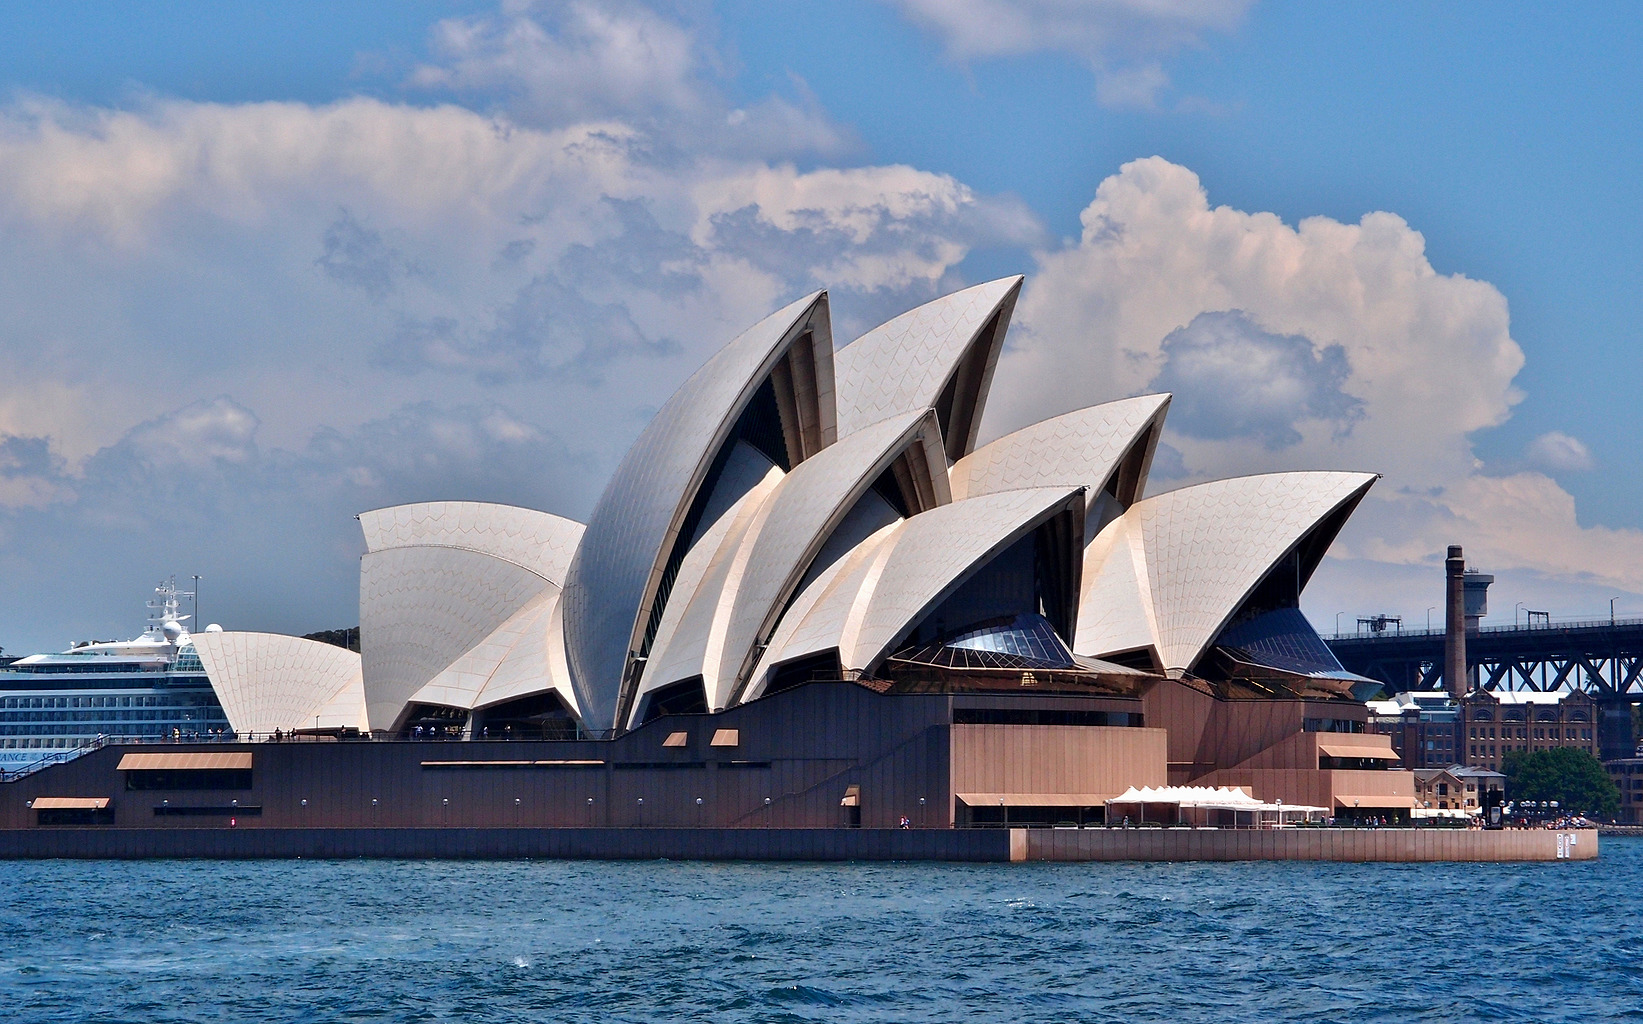 File:Sydney Opera House from the east.jpg - Wikimedia Commons